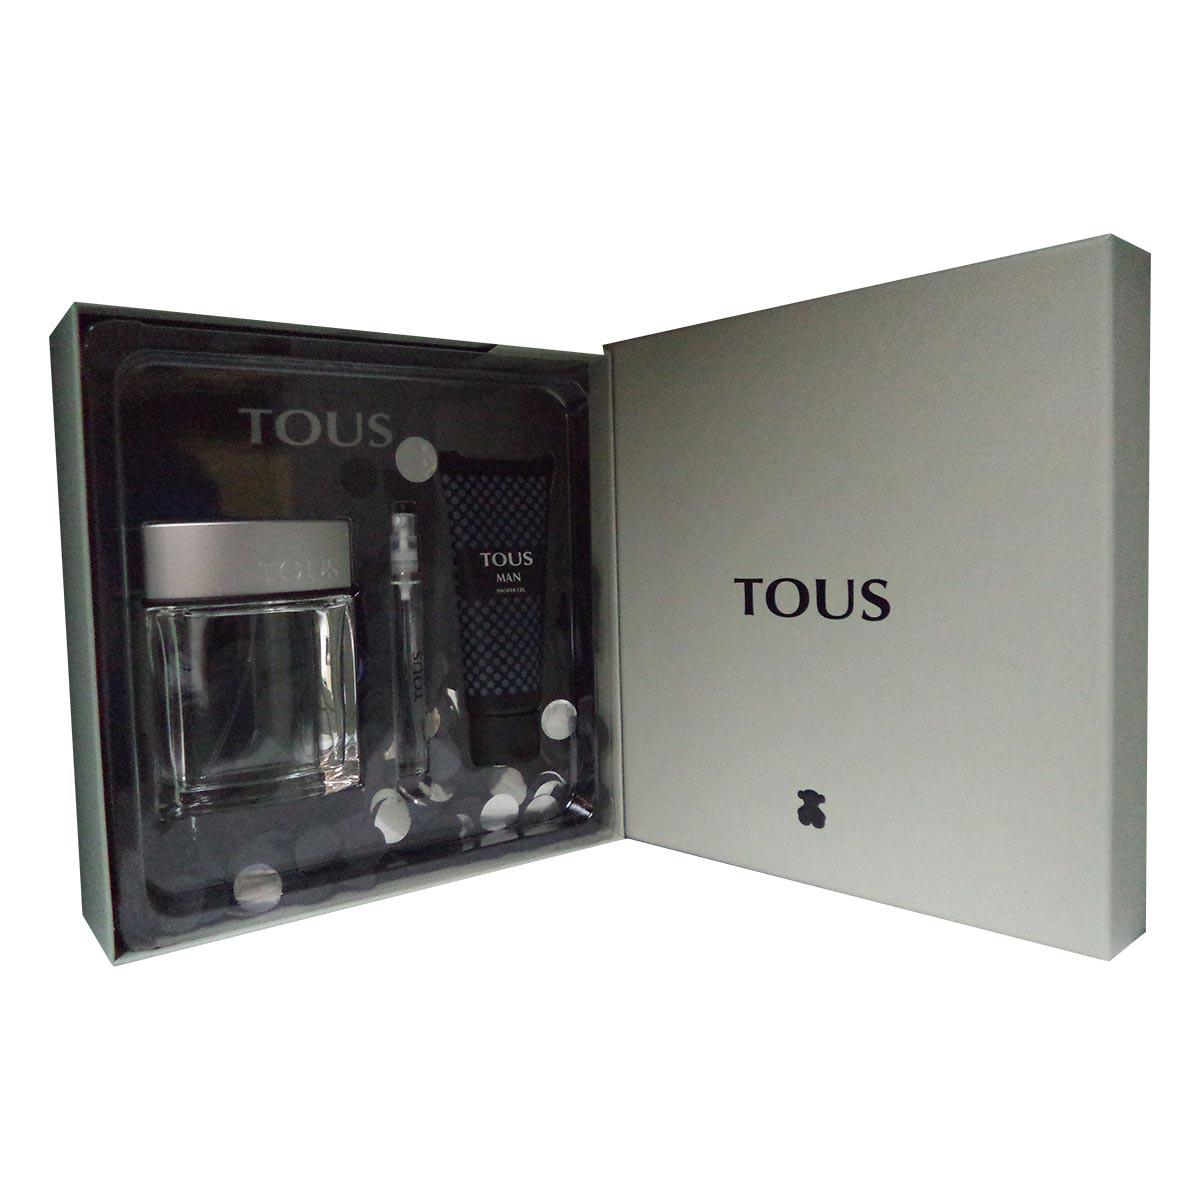 Tous fragrances Man Eau De Toilette 100ml Shower Gel 100ml Miniature